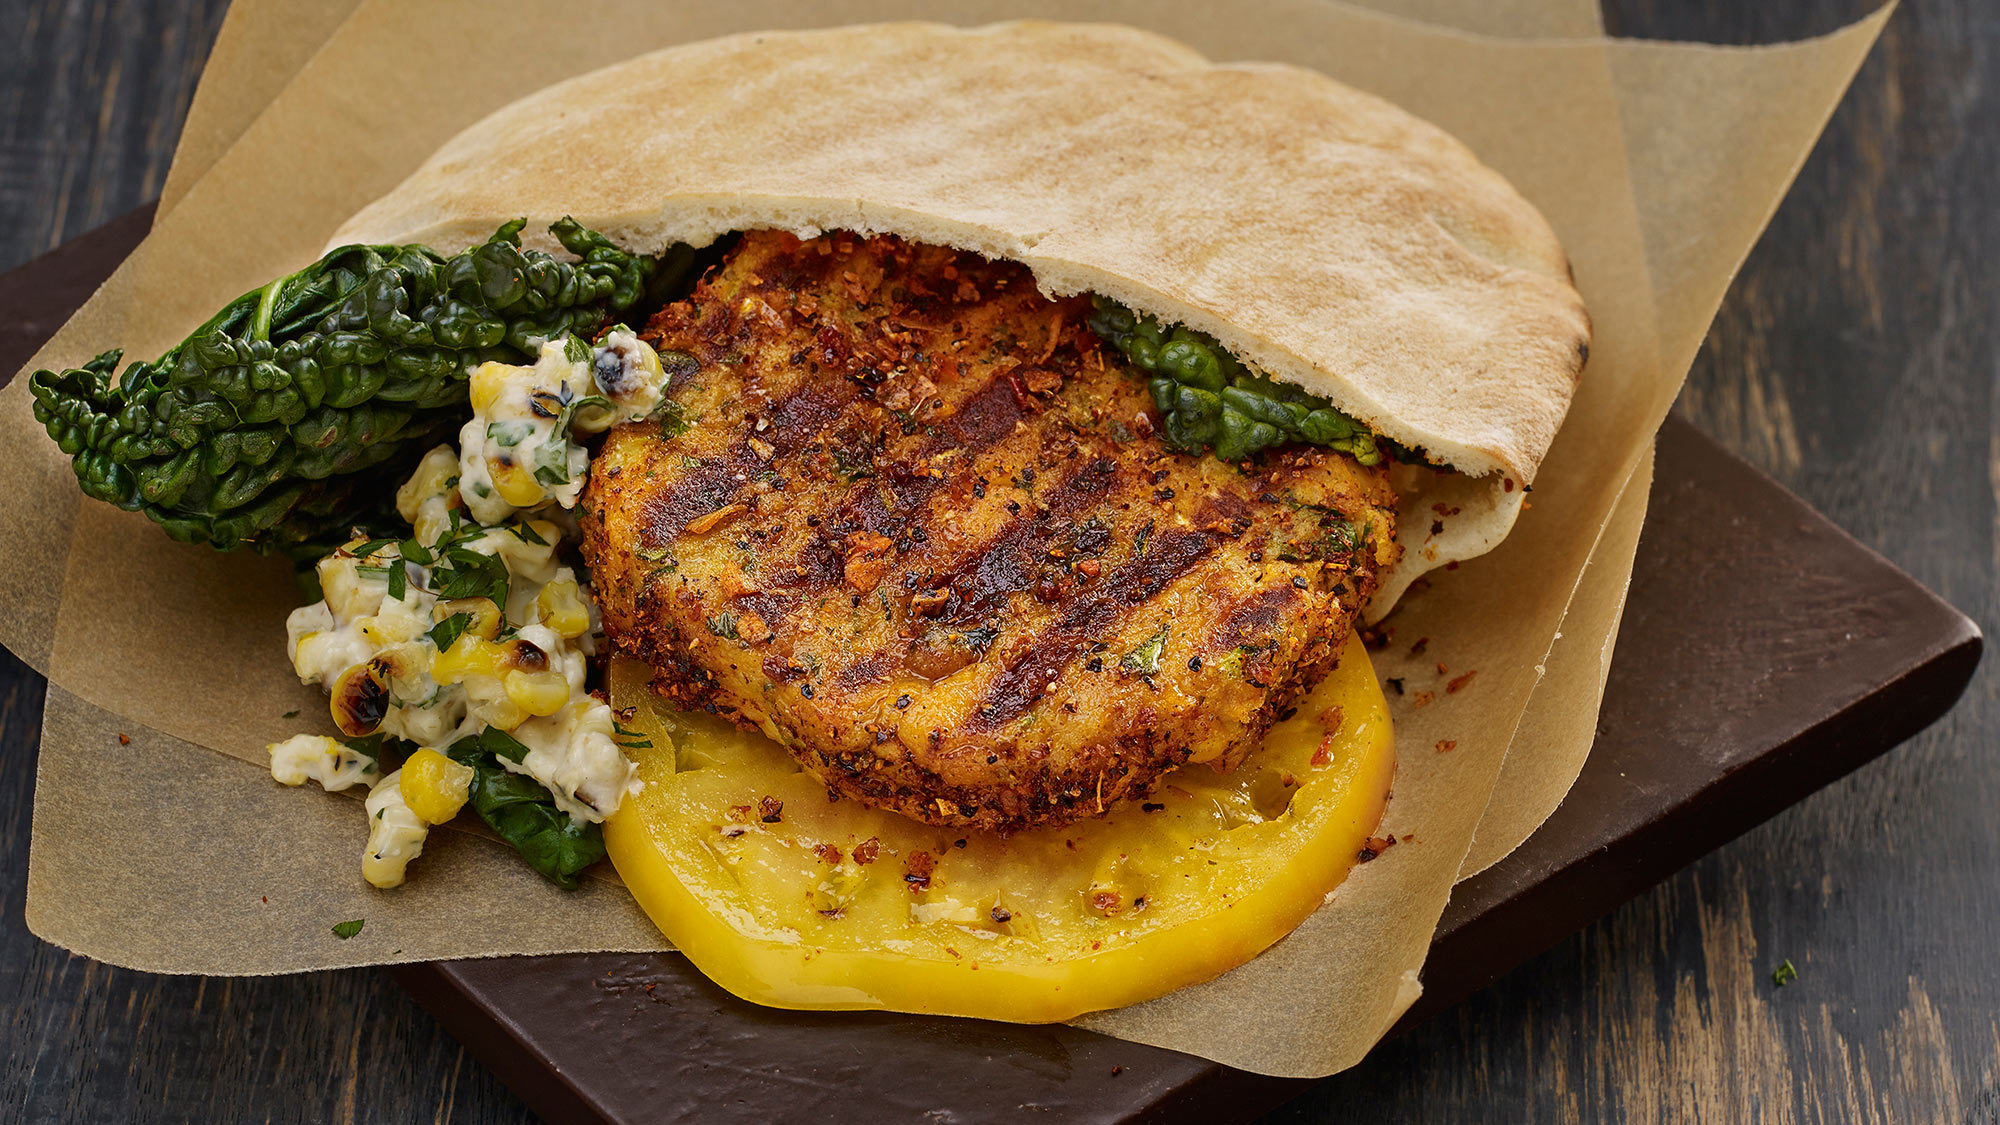 McCormick GrillMates Mesquite Chickpea Burger with Grilled Corn Topping